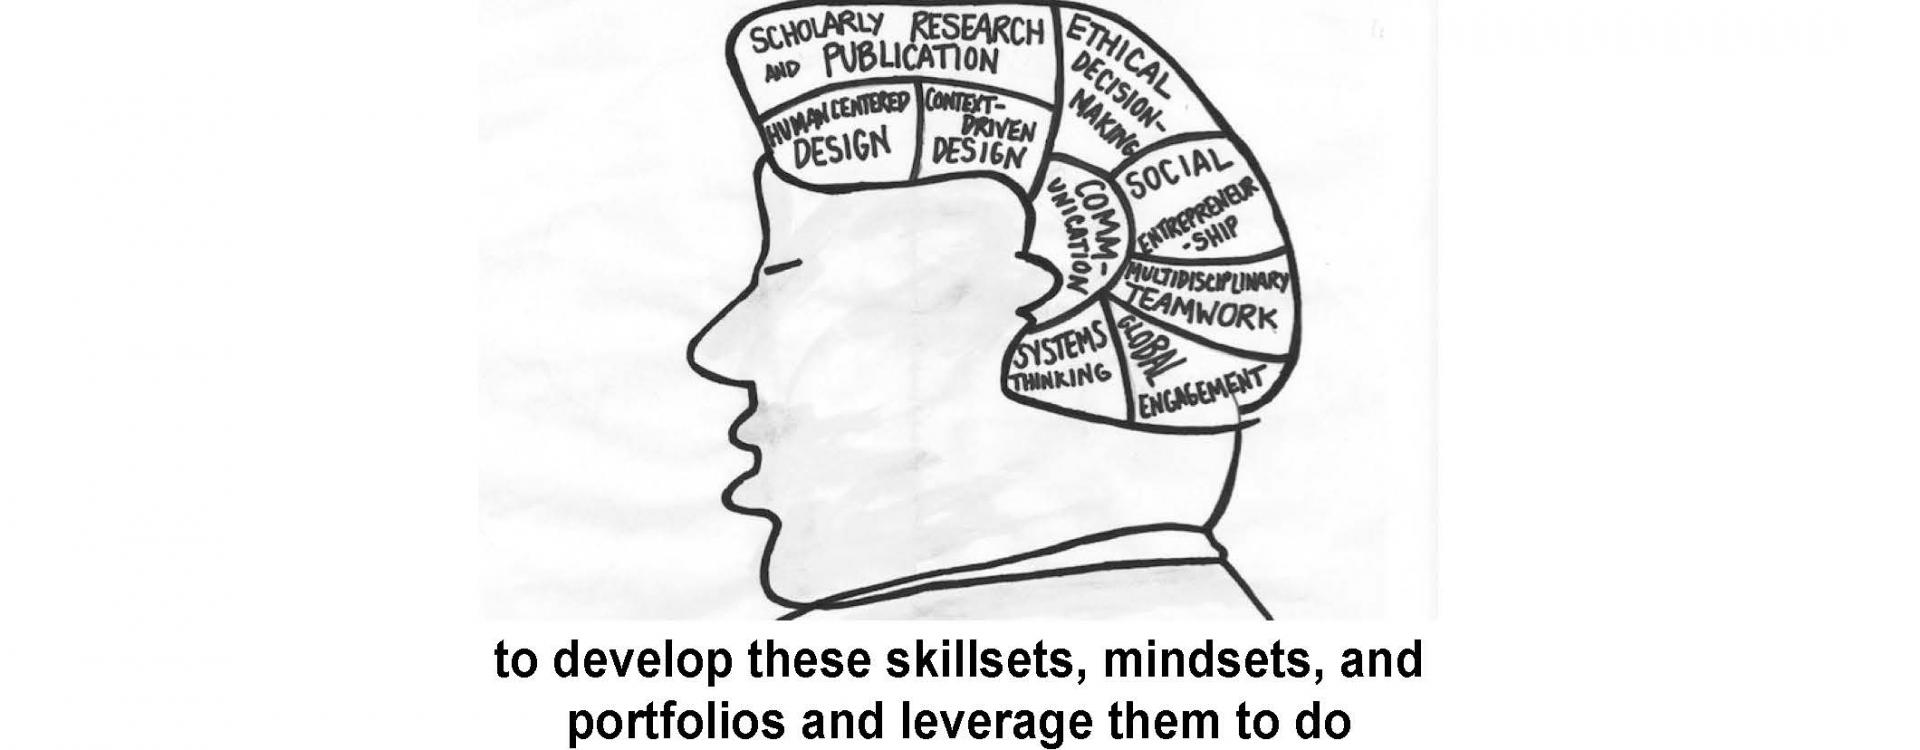 to develop these skillsets, mindsets, and portfolios and leverage them to do